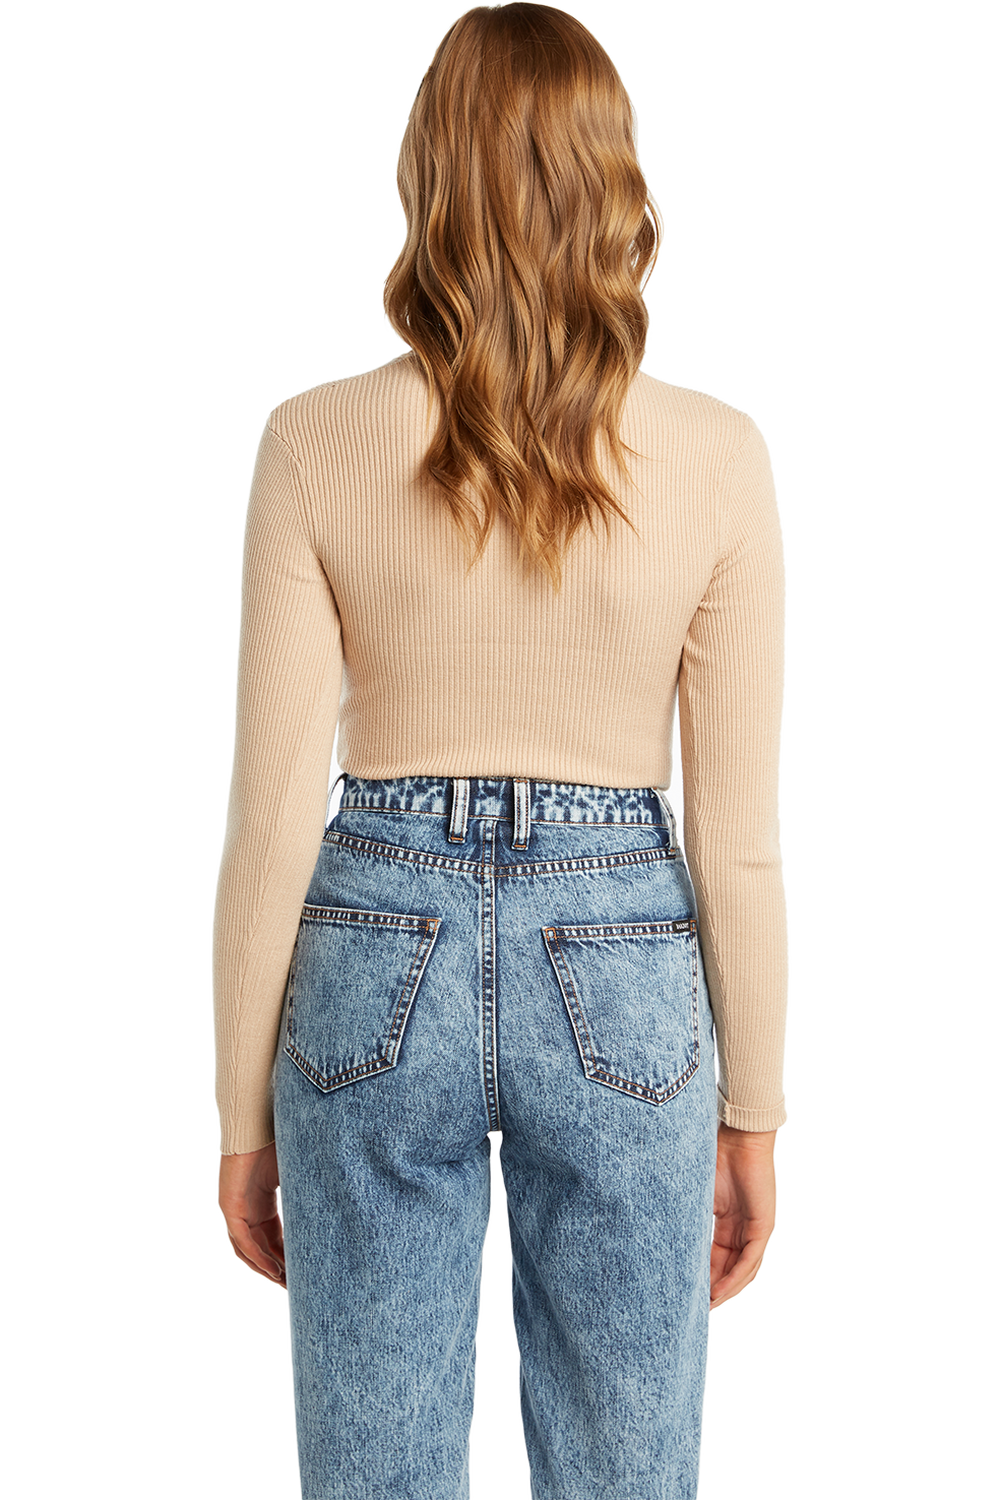 BUTTON UP RIB BODYSUIT in colour MOONLIGHT